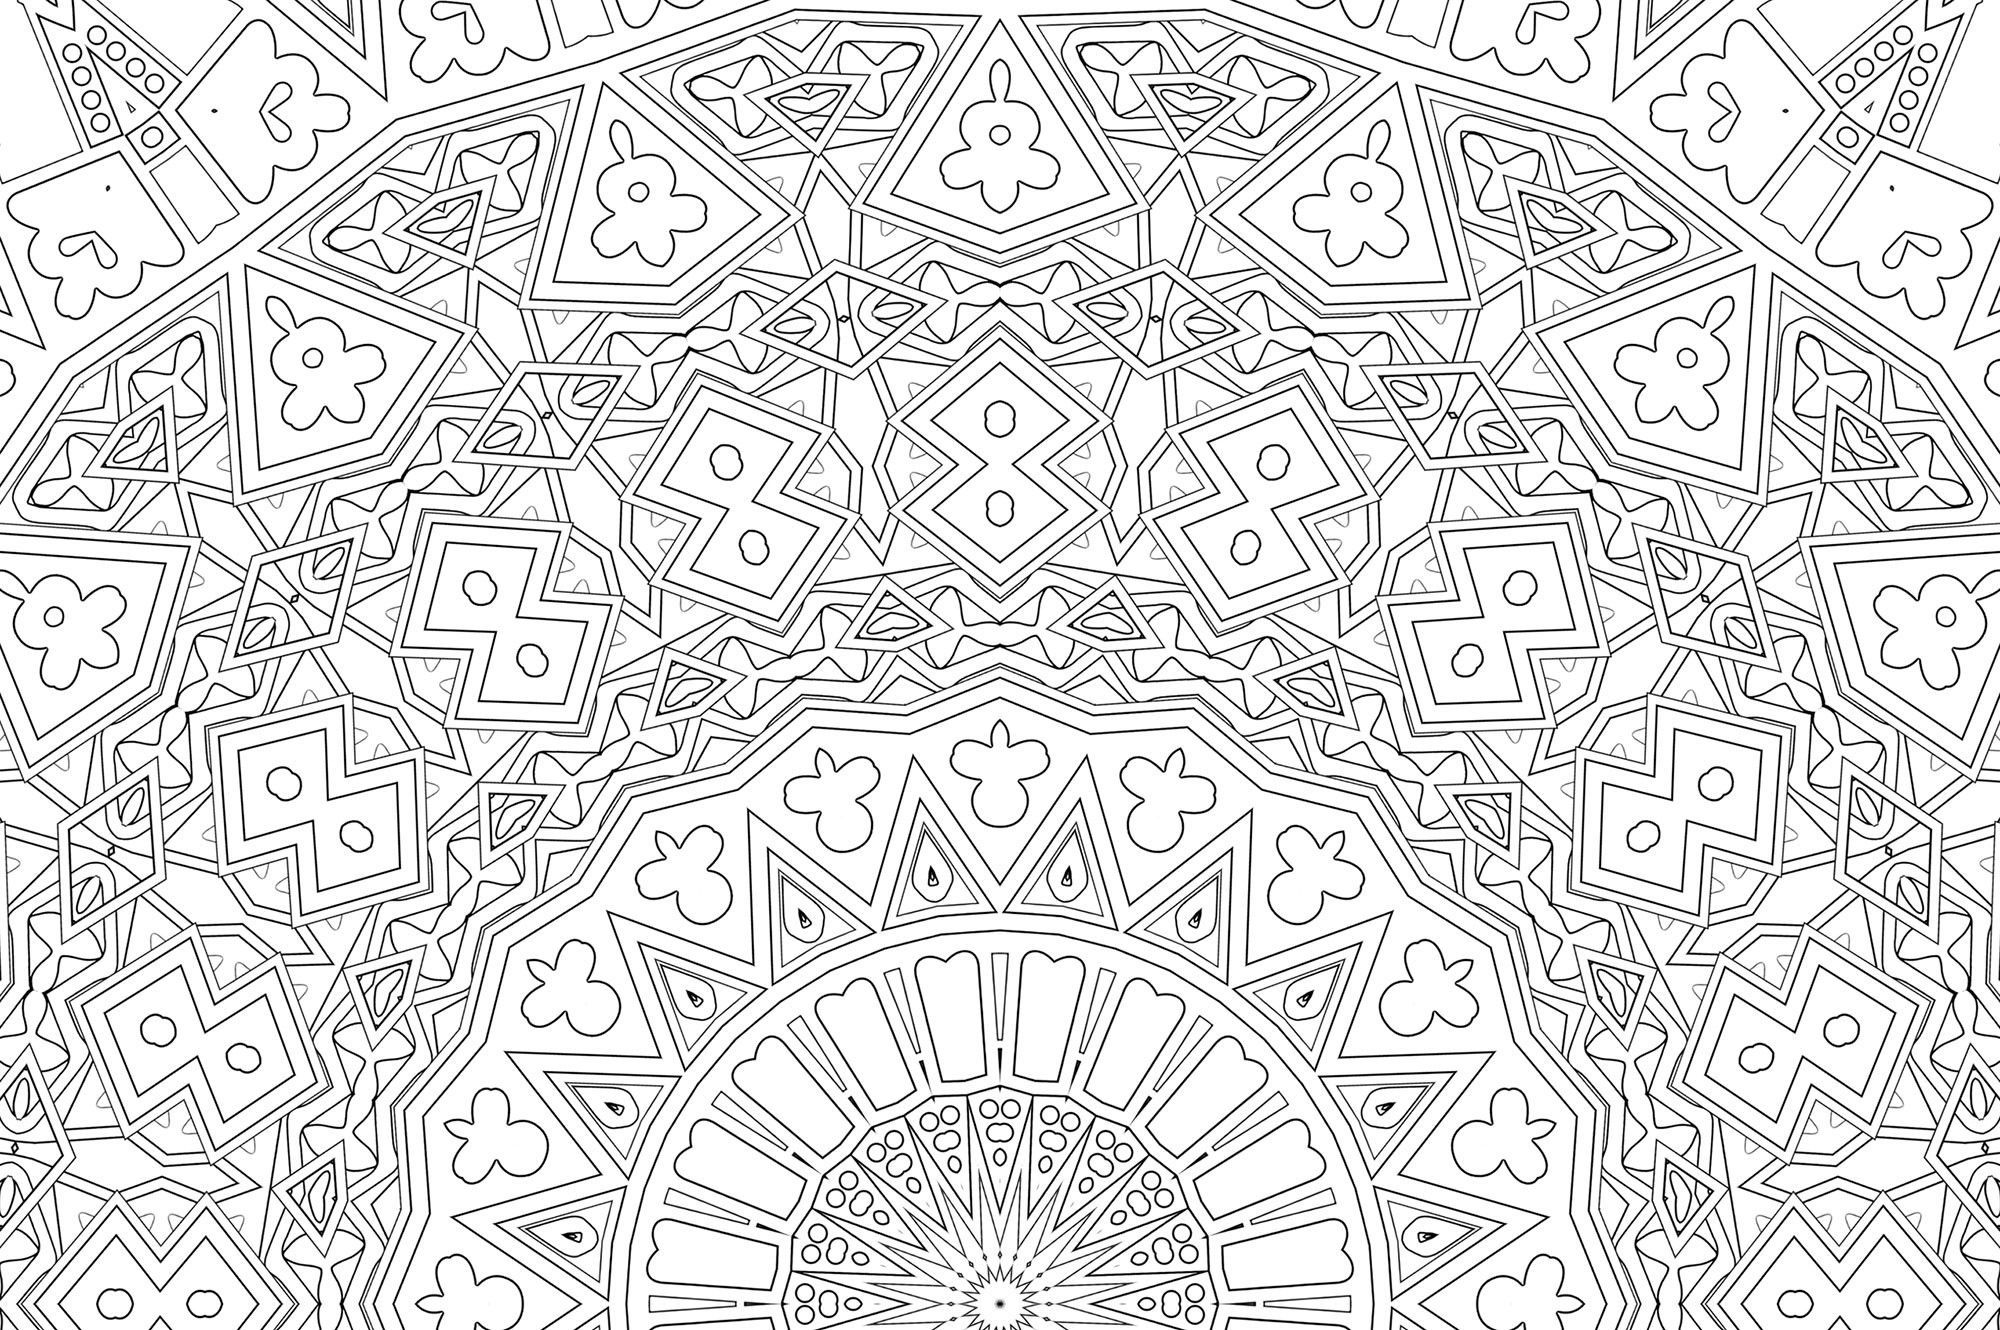 kaleidoscope activity coloring pages - photo#6